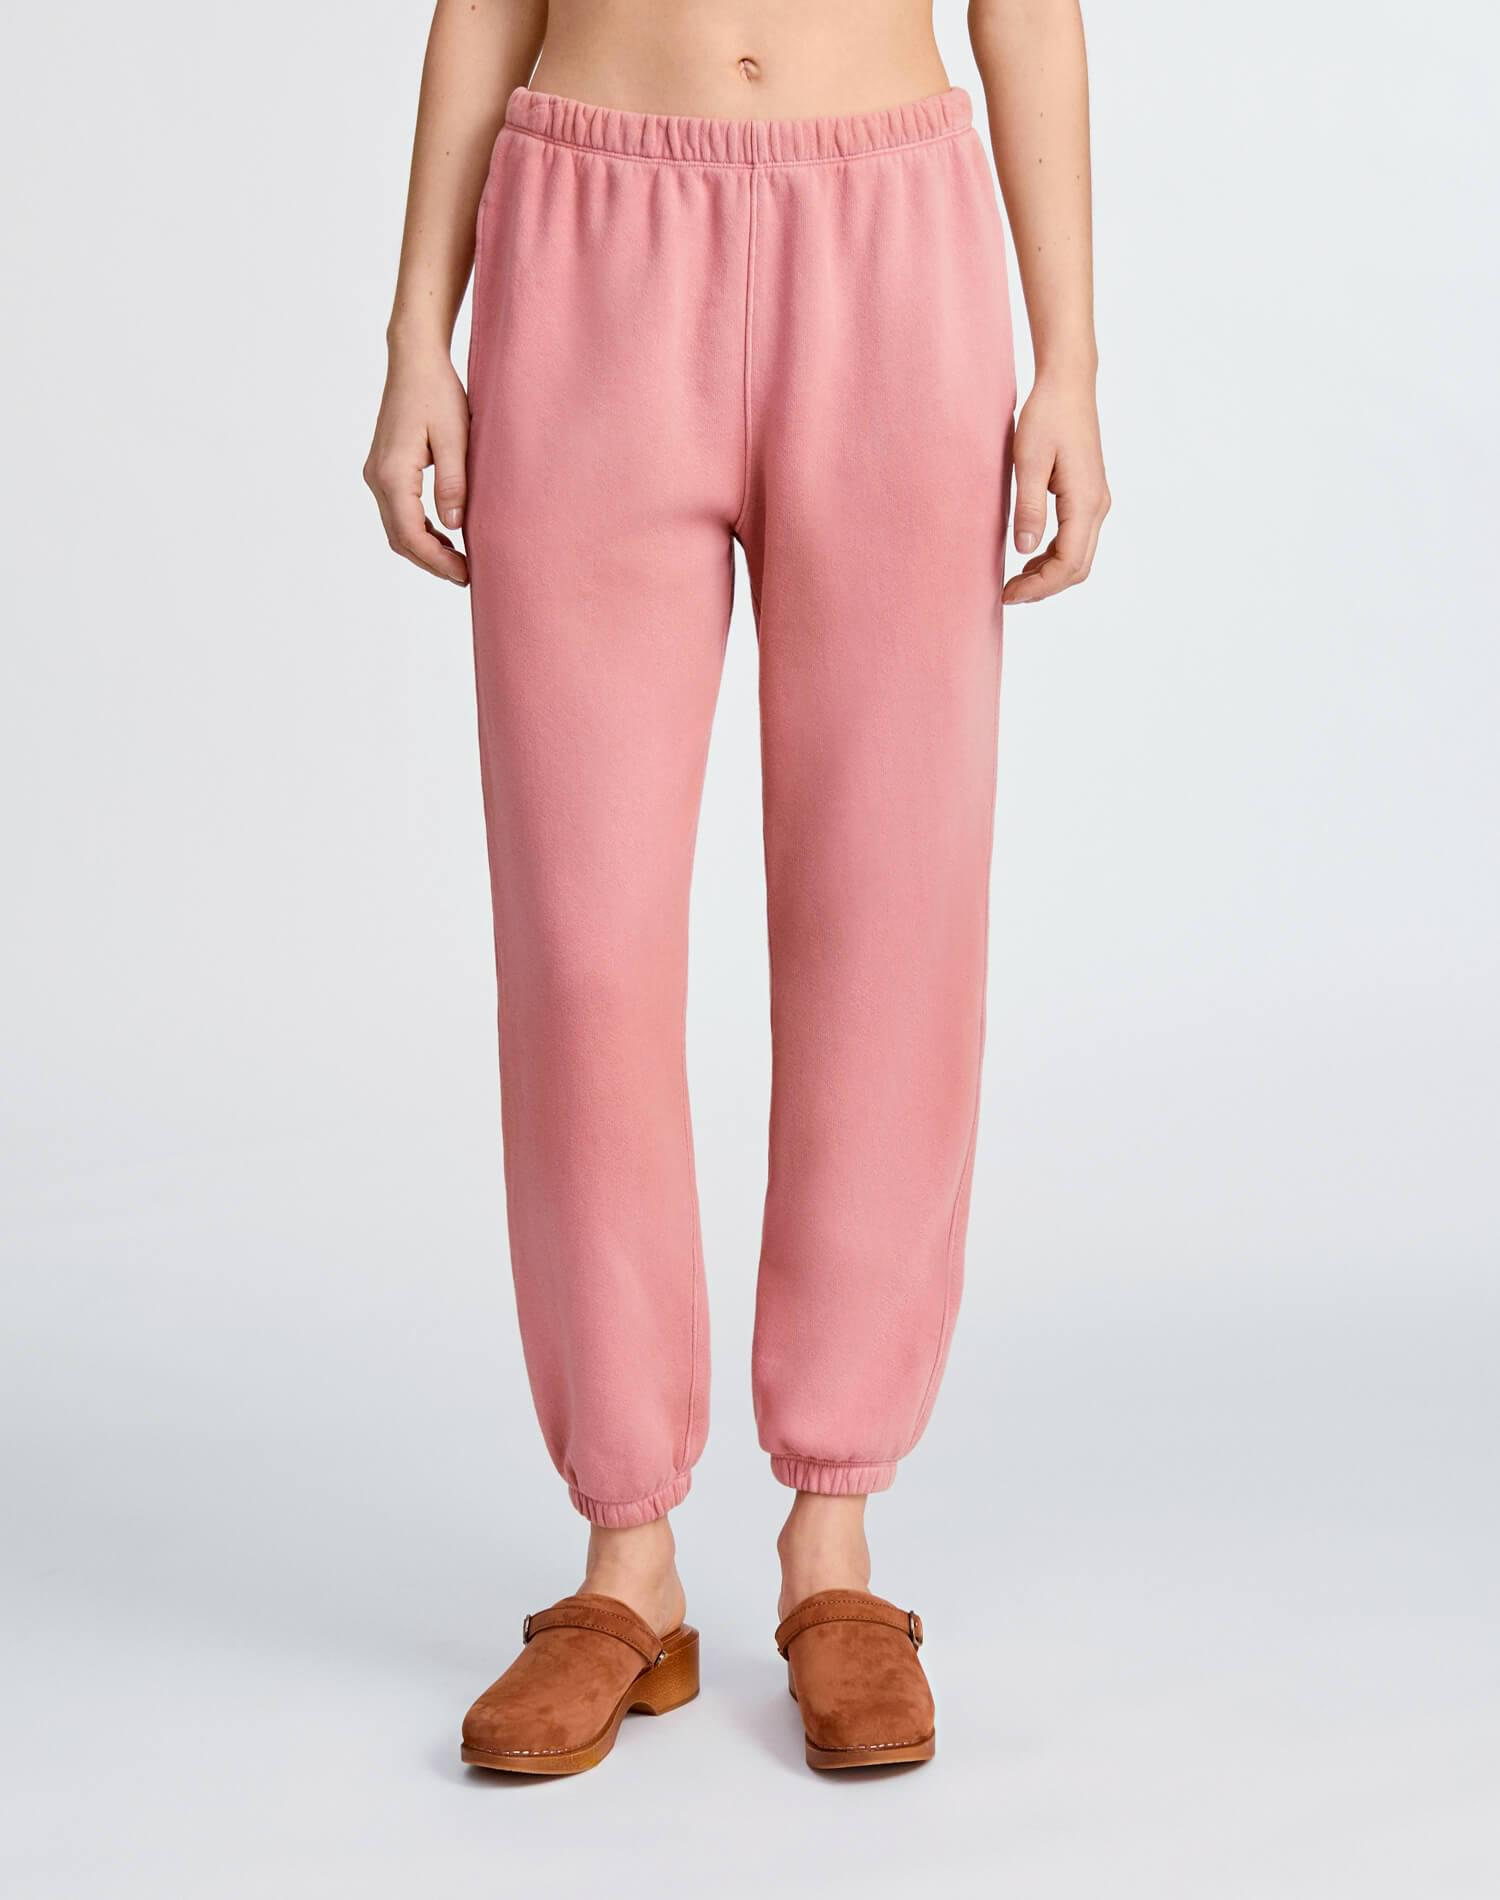 80s Sweatpant - Faded Clay